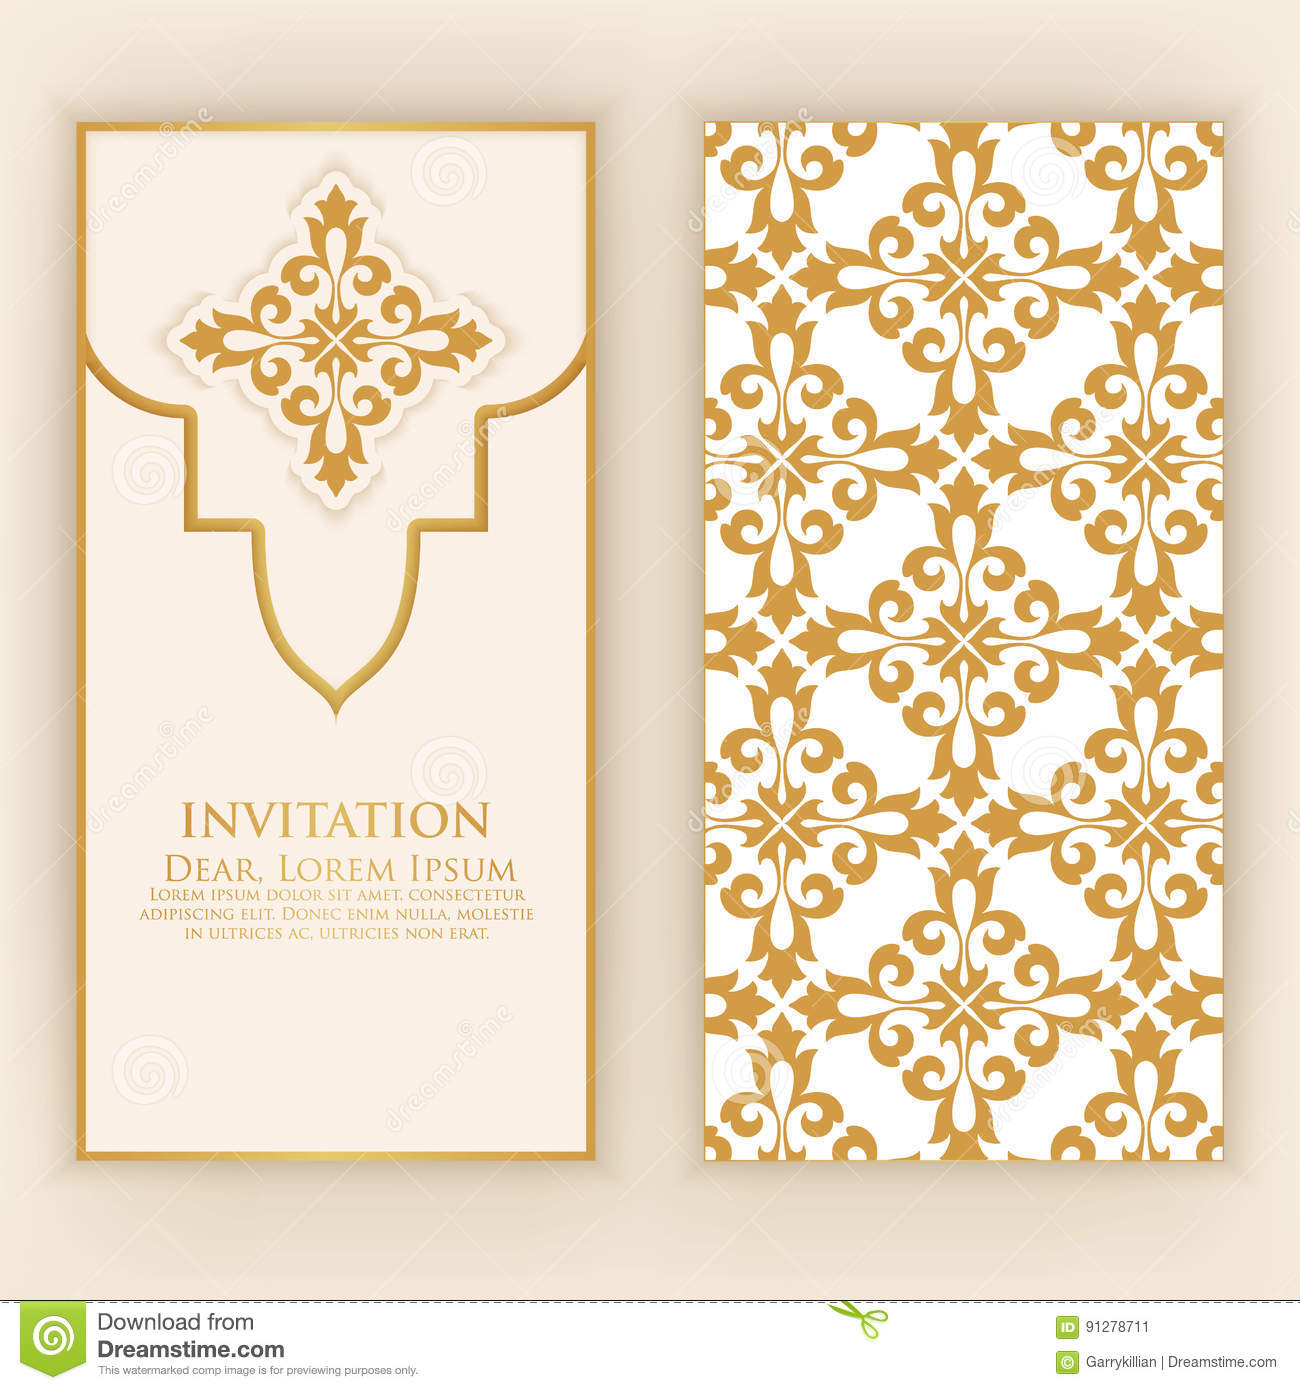 Invitation Cartes Avec La Damasse Ethnique Ou Elements Darabesque Conception Abstraite De Style Visite Professionnelle